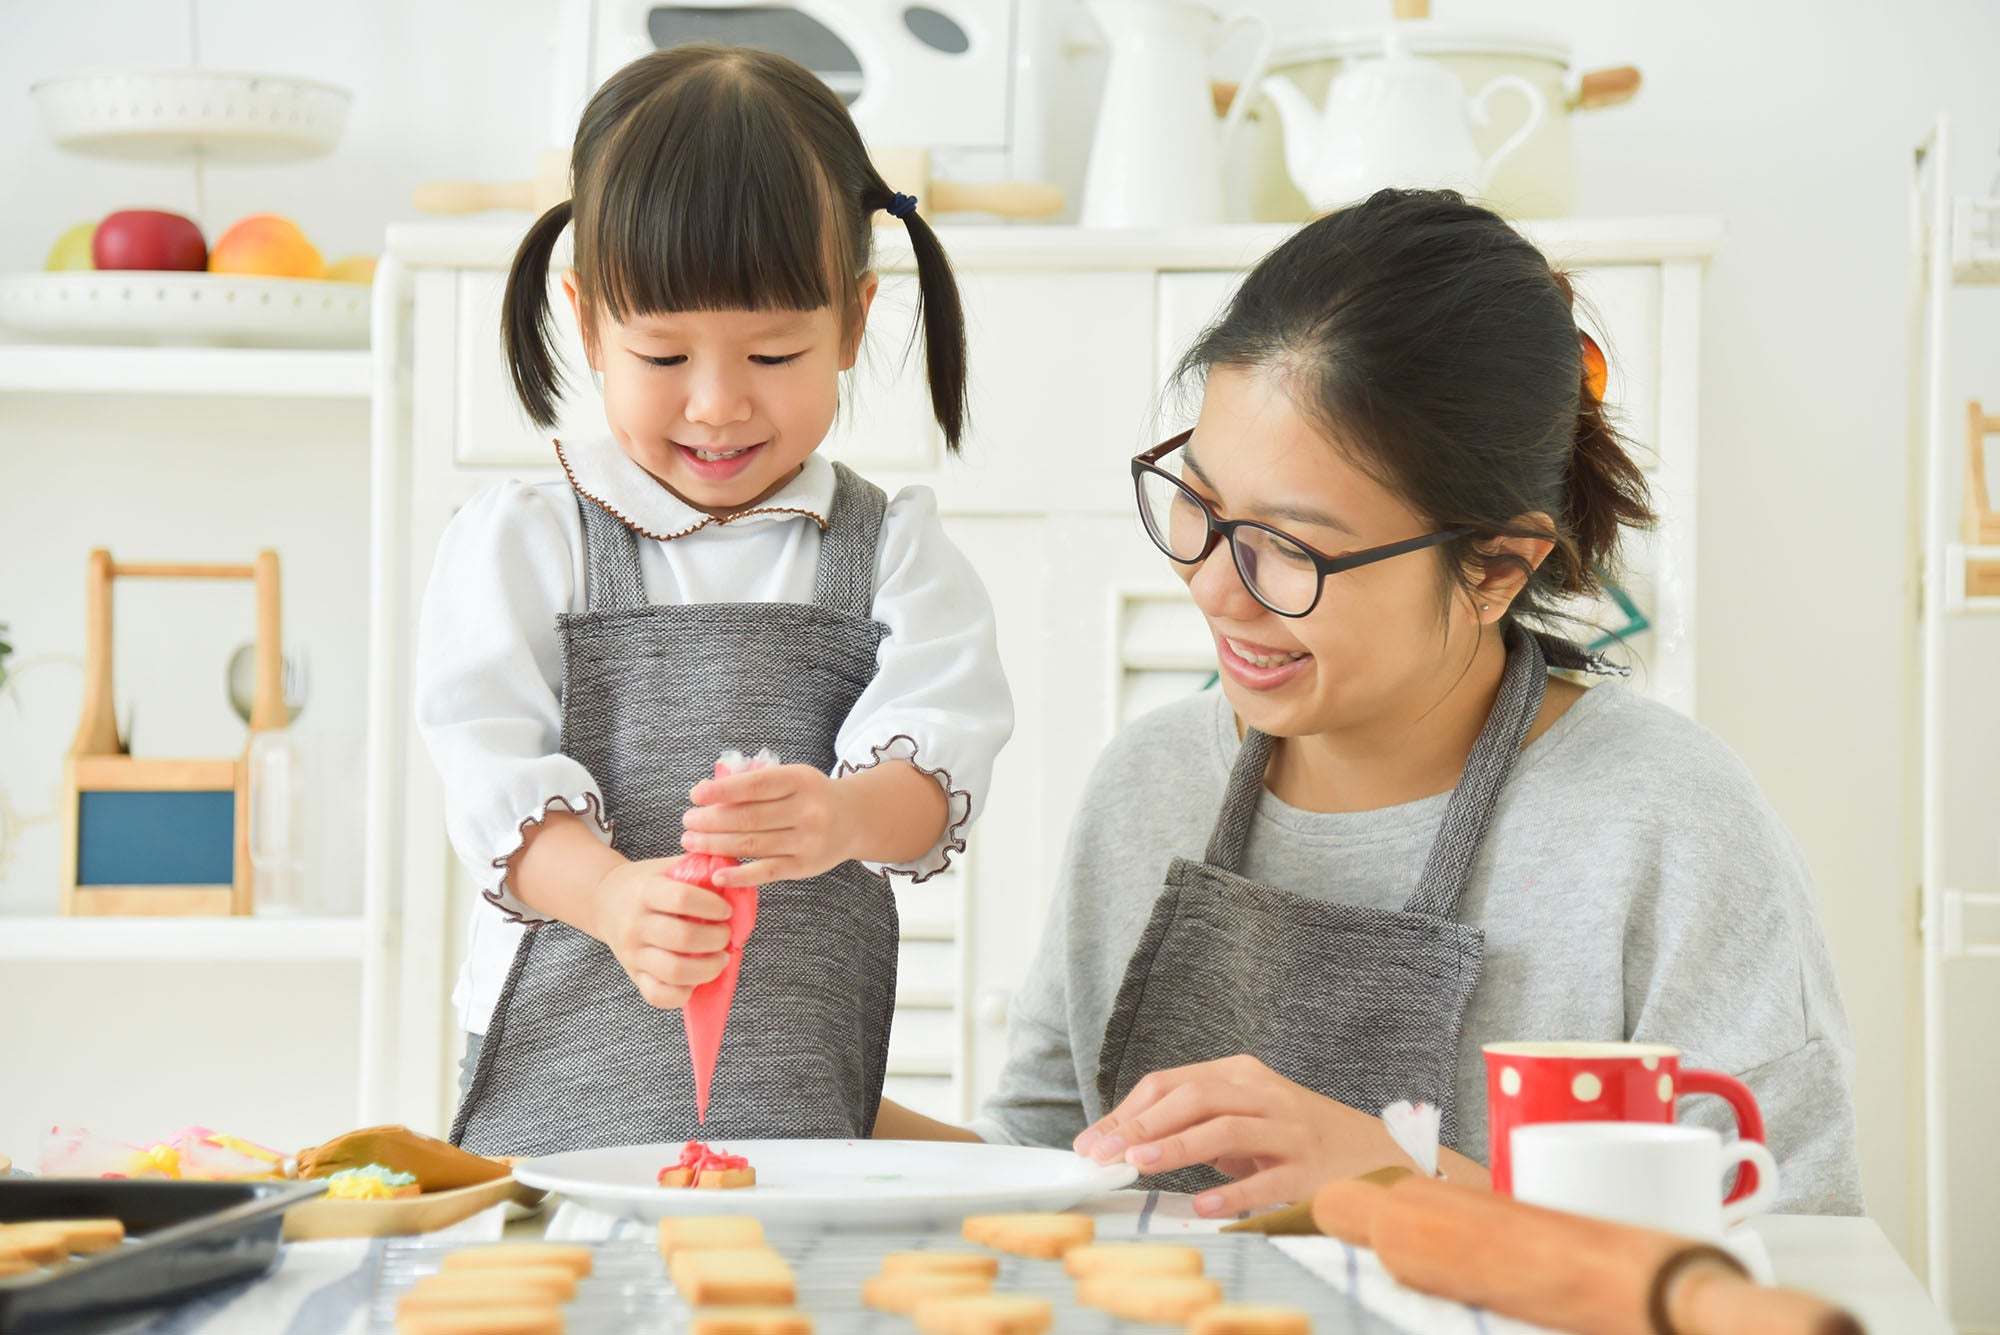 Mom and her daughter are making a mini cookie in the kitchen